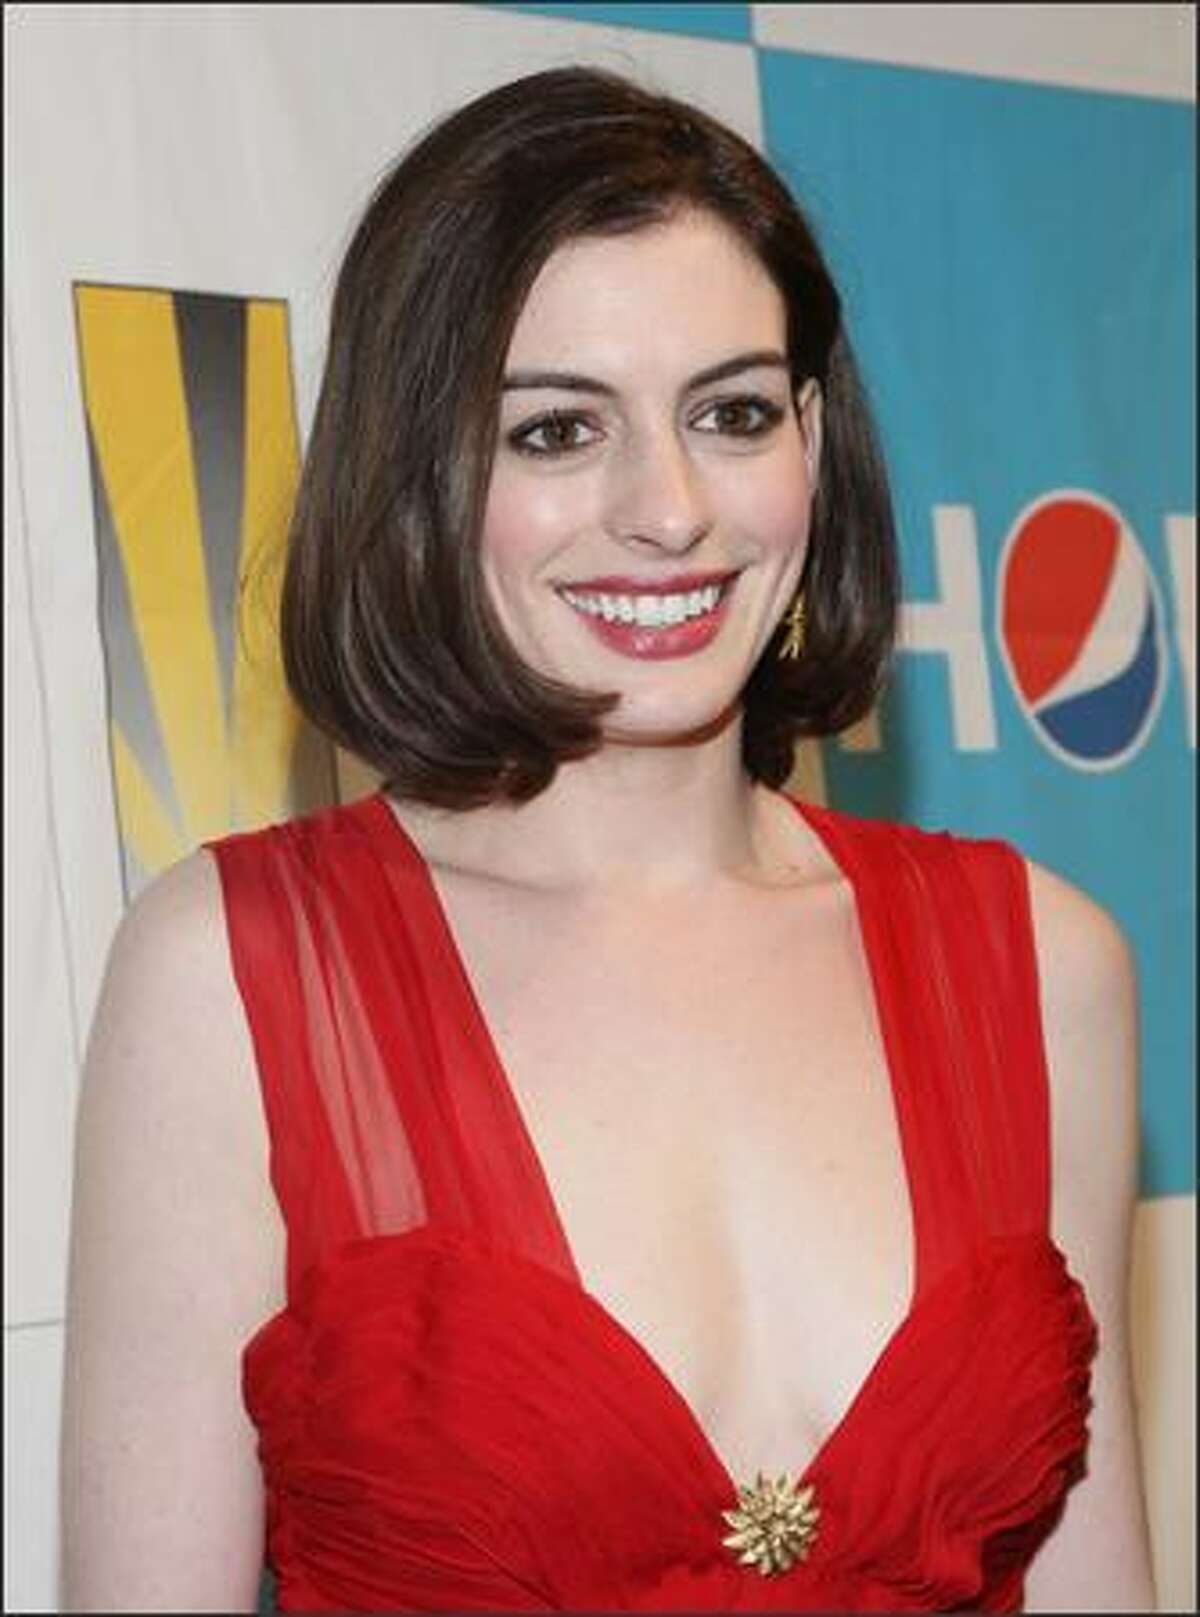 Actress Anne Hathaway attends the Creative Coalition's 2009 Inaugural Ball at the Harman Center for the Arts on Tuesday in Washington, DC.